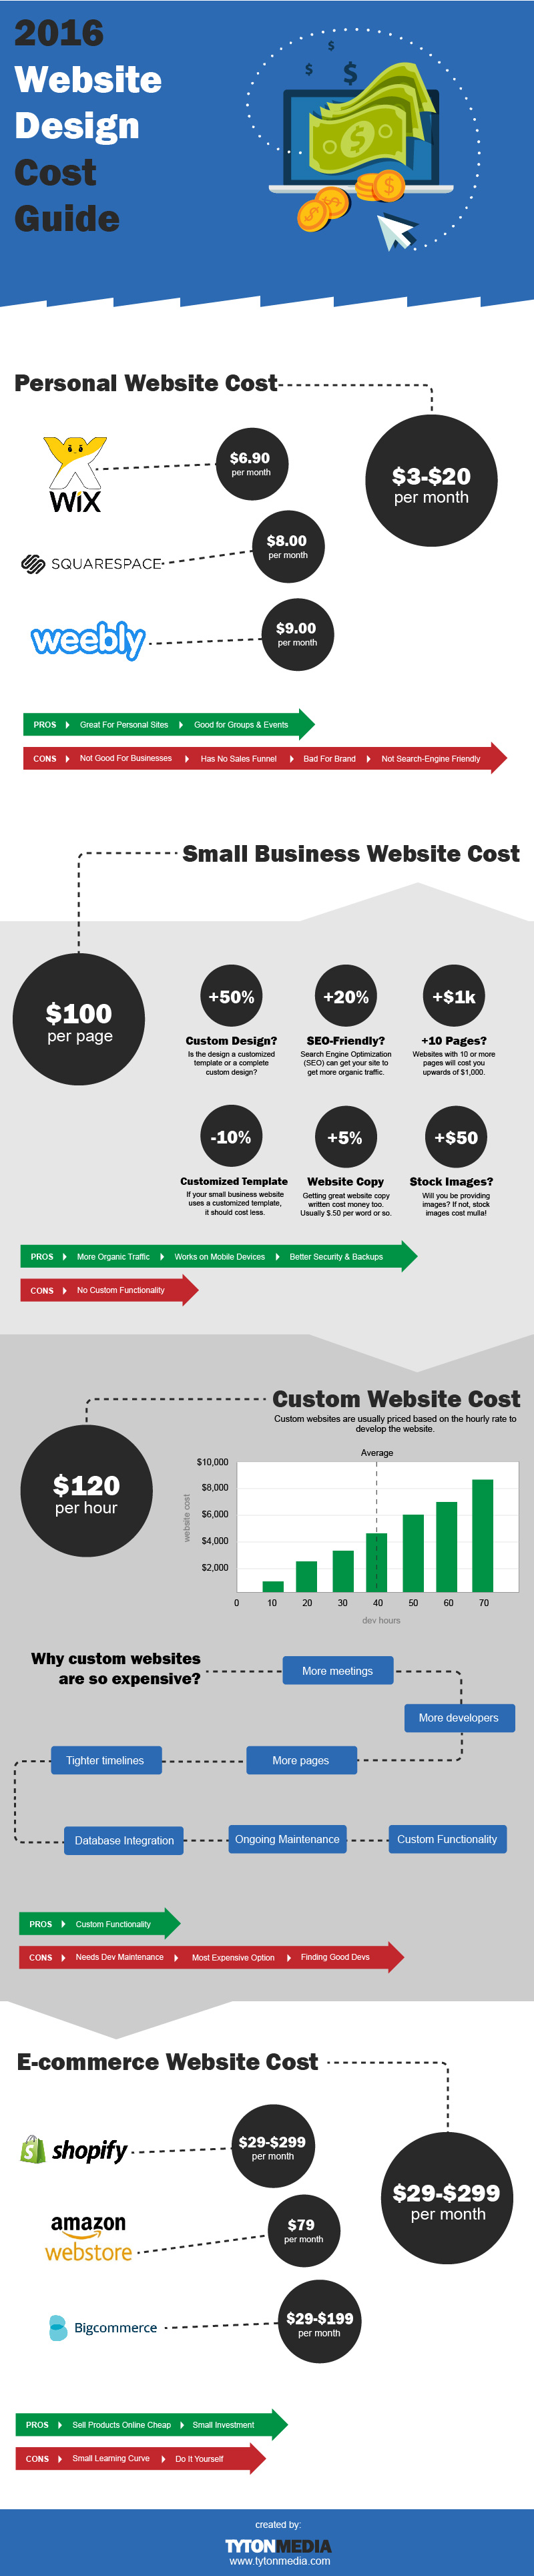 2016 web design pricing guide infographic